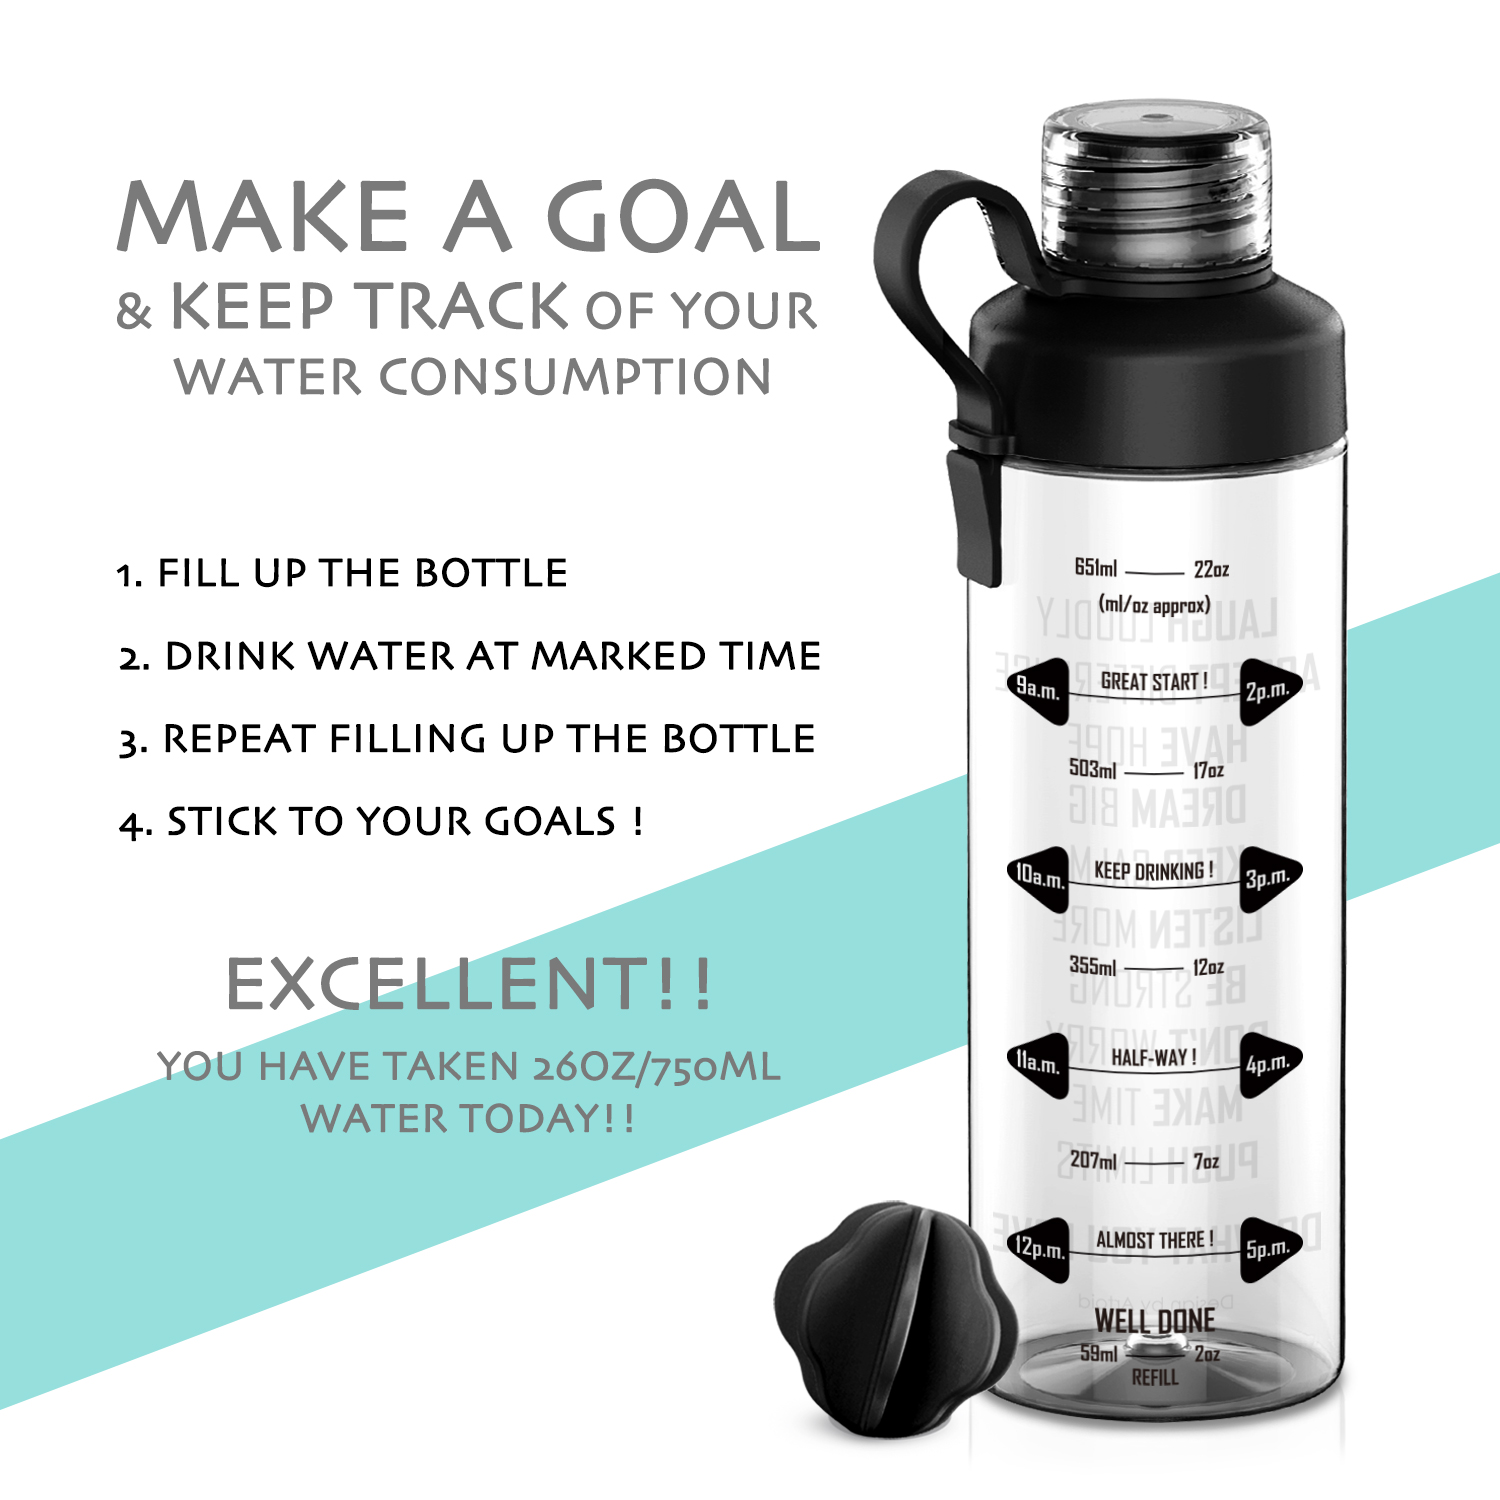 ffe9ce42f5 750ml Motivational Fitness Workout Sports Water Bottle w/ Time Marker & Measurements  Goal Marked Times For Measuring Intake-in Water Bottles from Home ...